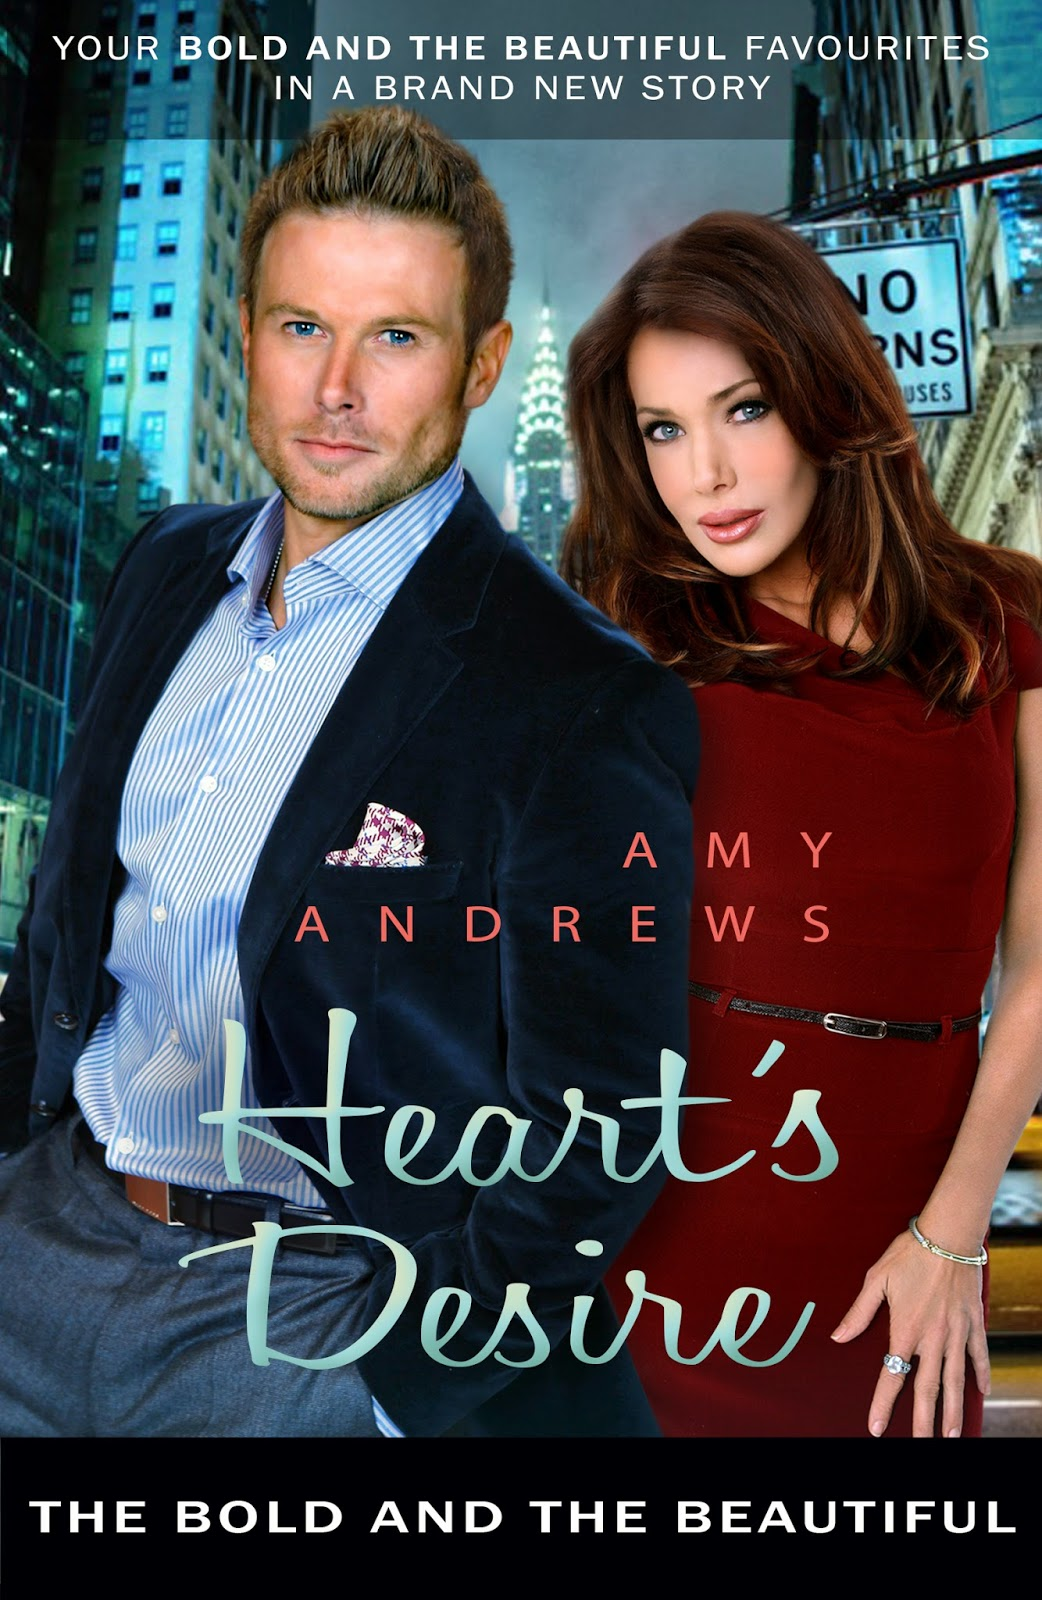 http://www.amazon.com/Hearts-Desire-The-Bold-Beautiful-ebook/dp/B00OSNKFX2/ref=pd_rhf_se_p_img_1